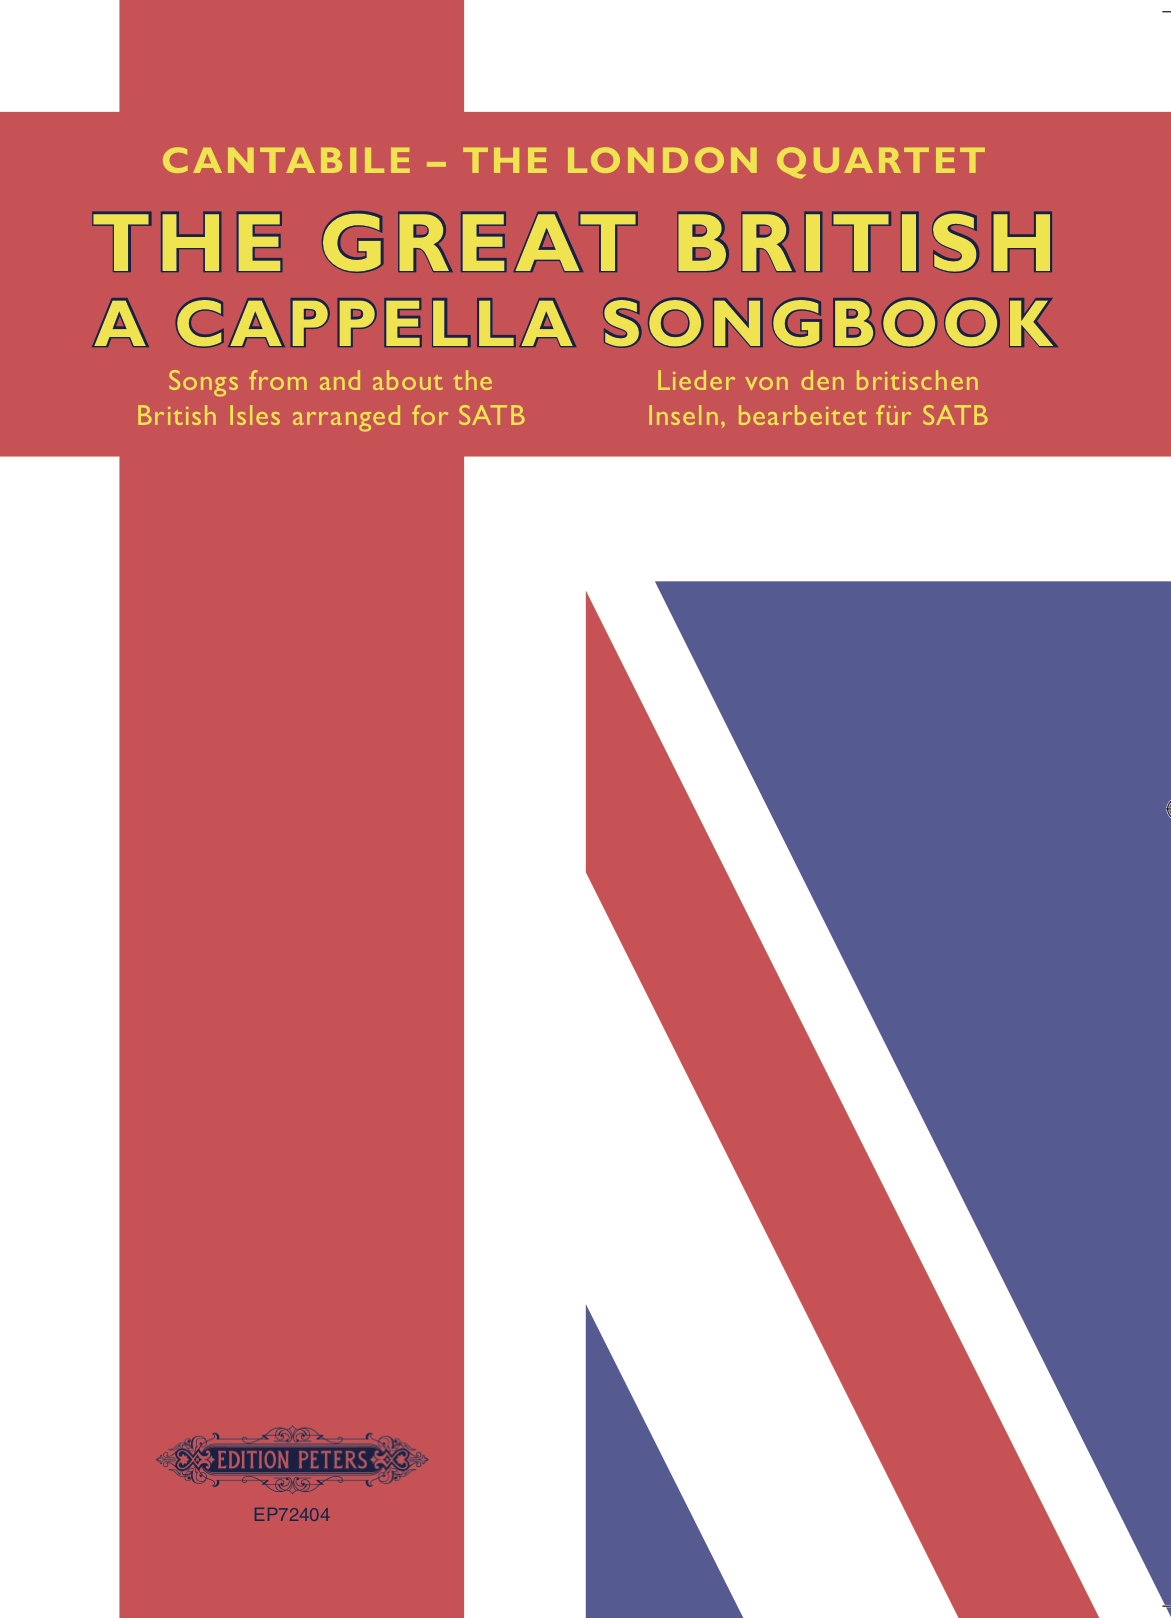 The Great British A Cappella Songbook.jpg